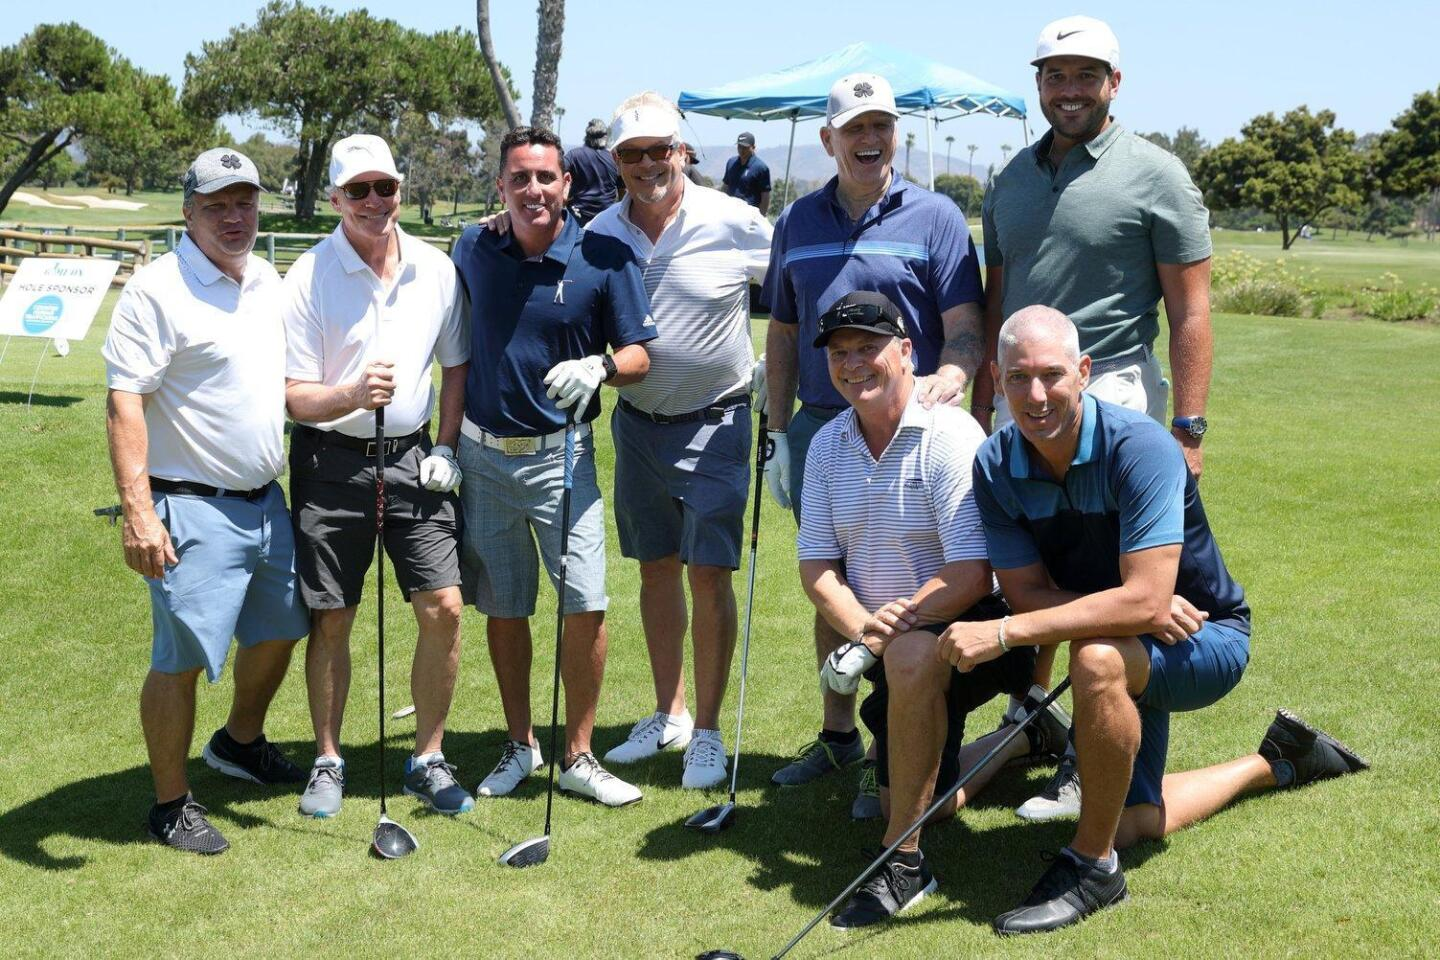 Operation Game On! 2019 at Fairbanks Ranch Golf Club